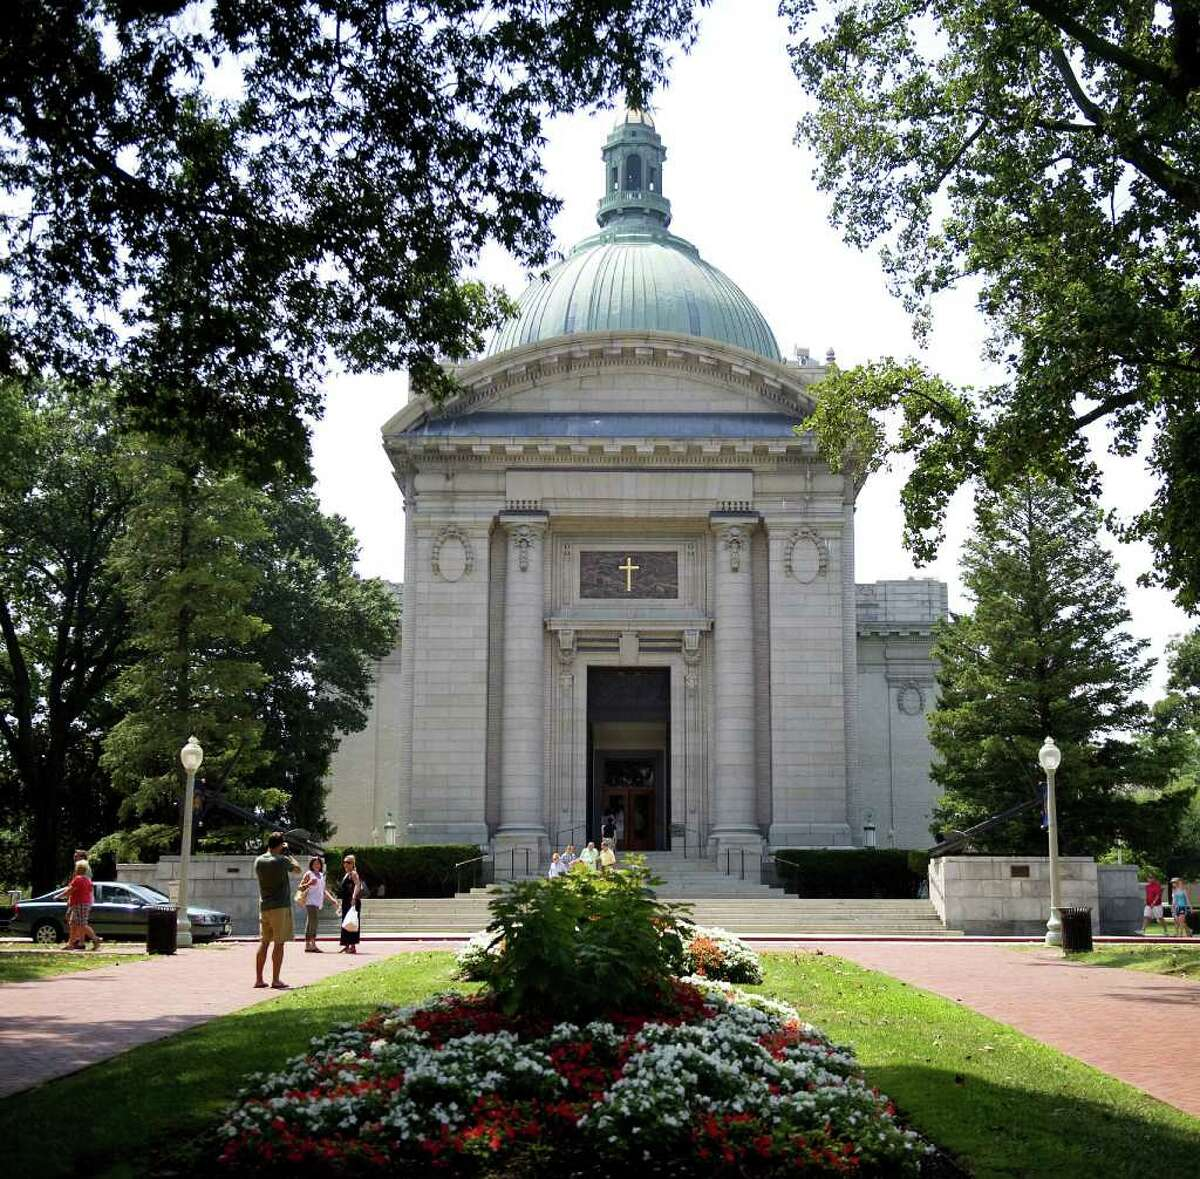 10. Annapolis, home of the U.S. Naval Academy is the nation's 10th-most-expensive major college town, with an average three-bedroom, two-bathroom house list price of $522,420, according to Coldwell Banker's 2011 College Home Listing Report.